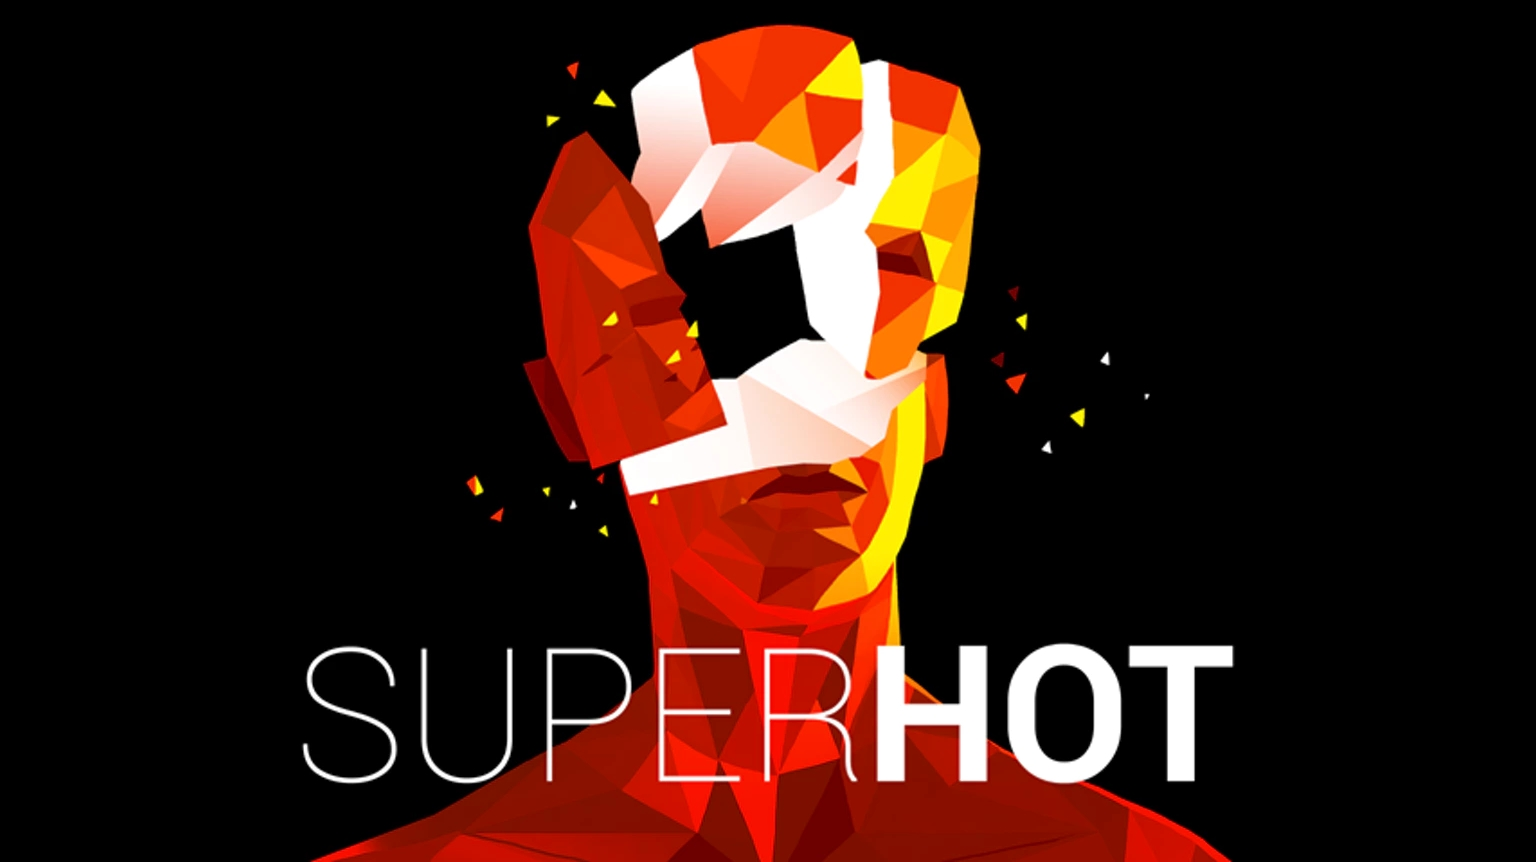 SUPERHOT telecharger gratuit de PC et Torrent